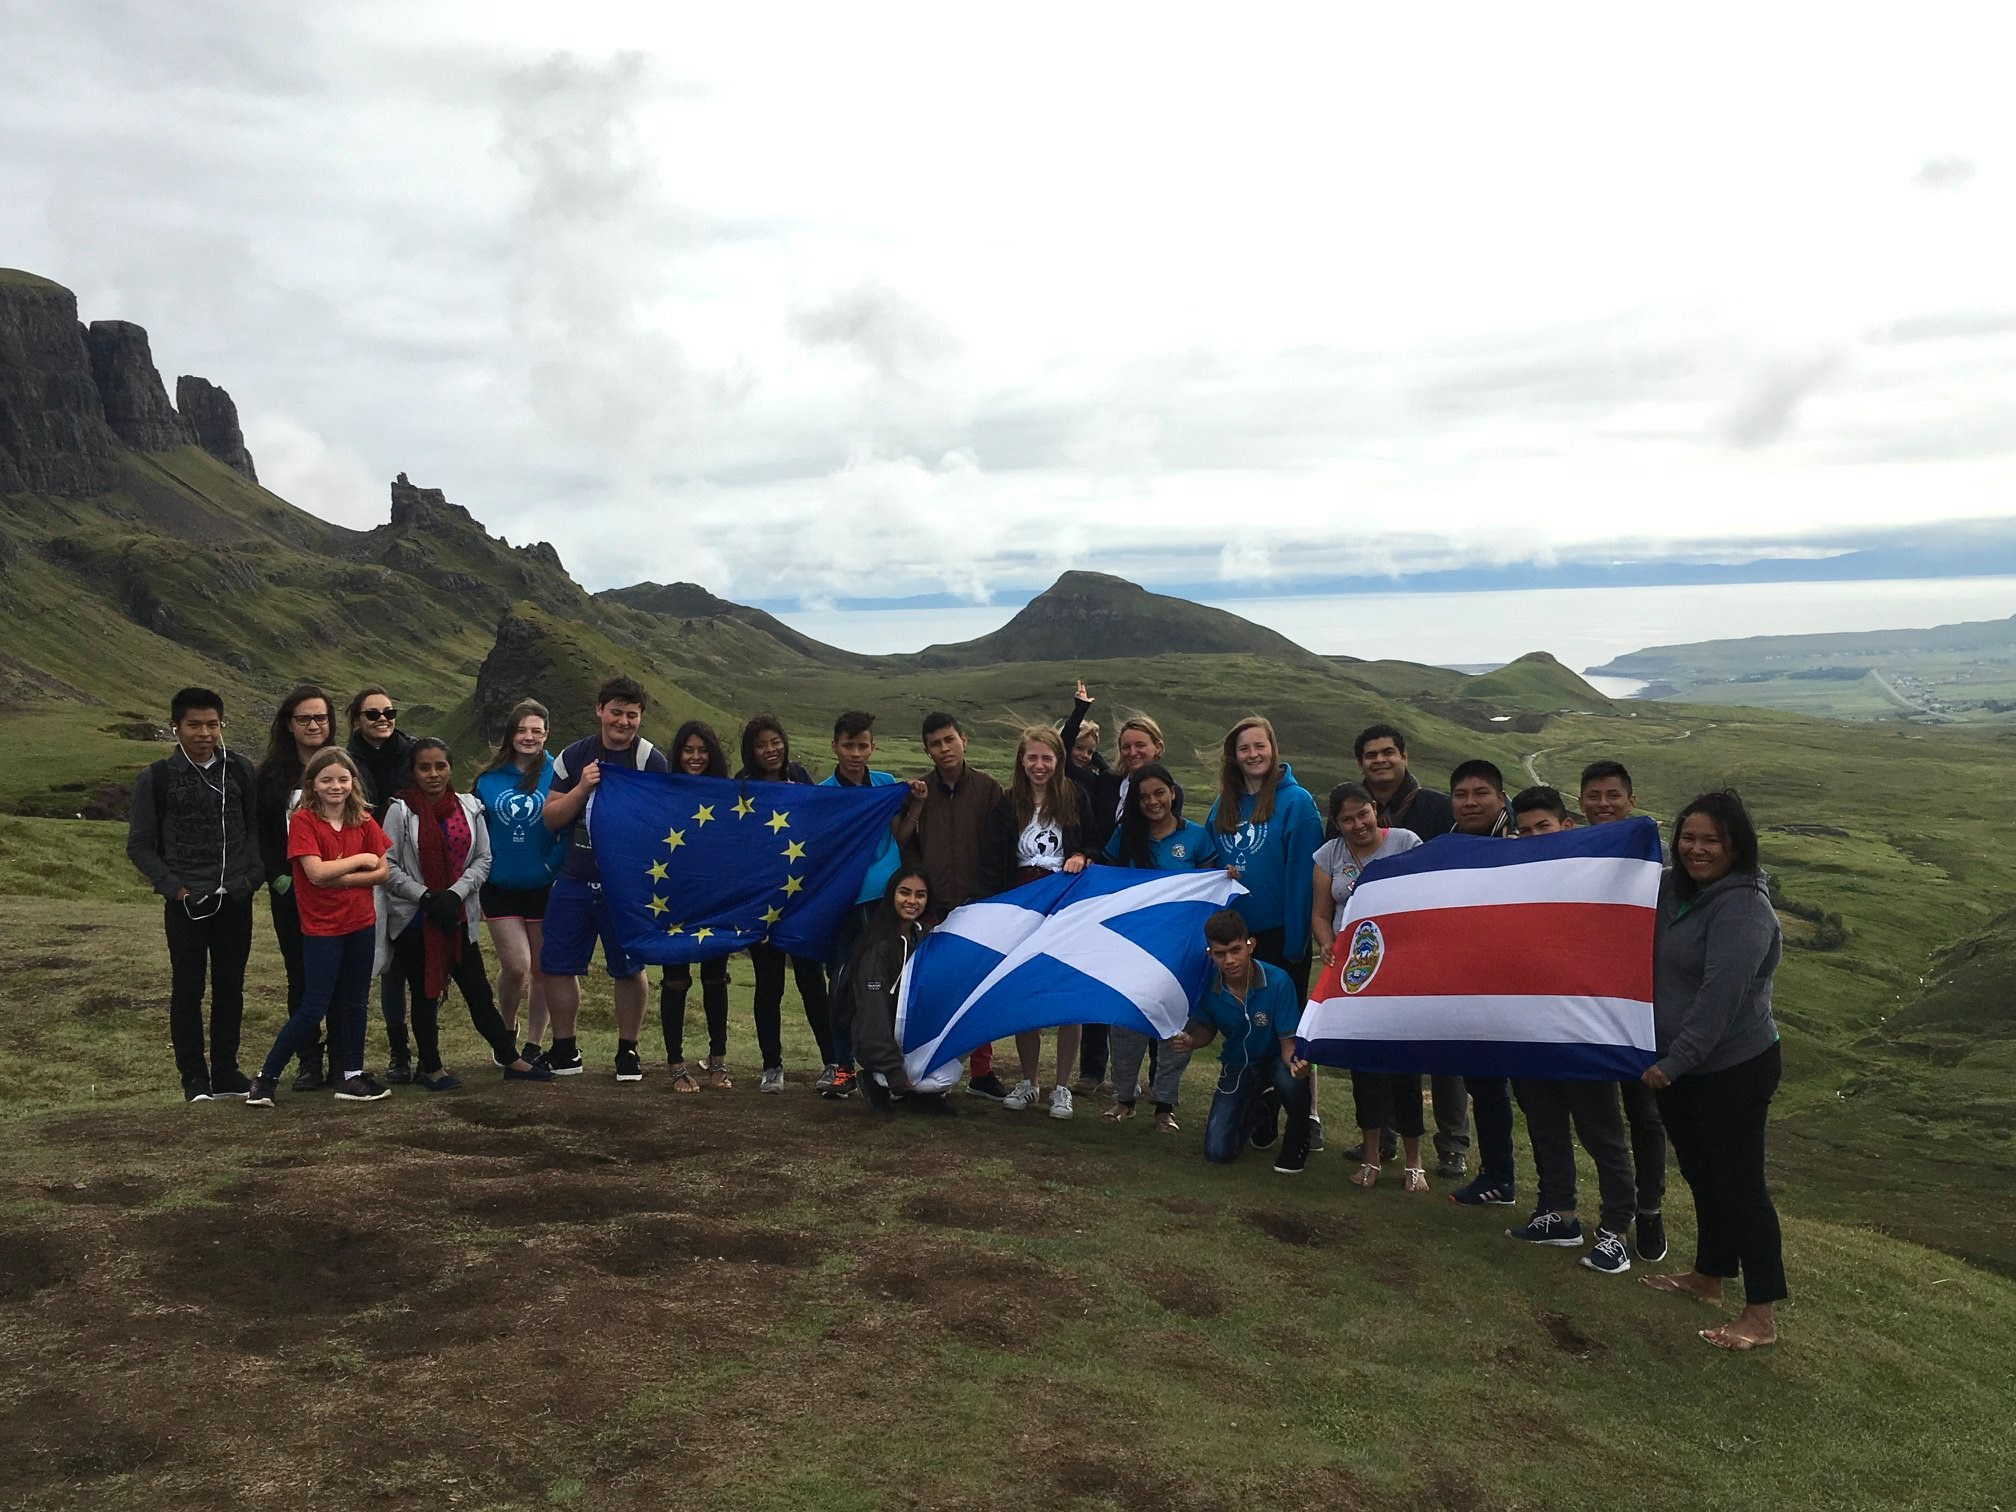 Participants from the Bi-Regional Youth Exchange on the Isle of Skye, July 2018, holding flags of Scotland, Costa Rica and the European Union